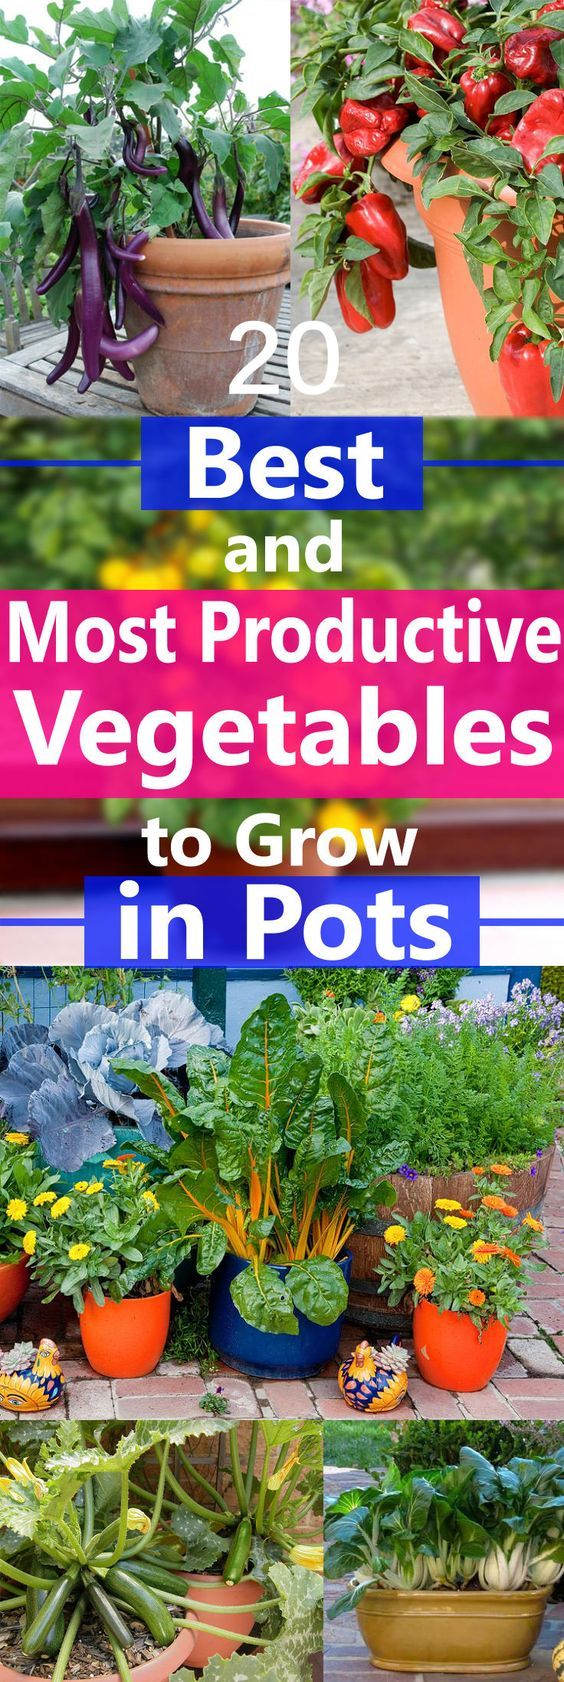 Best u0026 Most Productive Vegetables to Grow